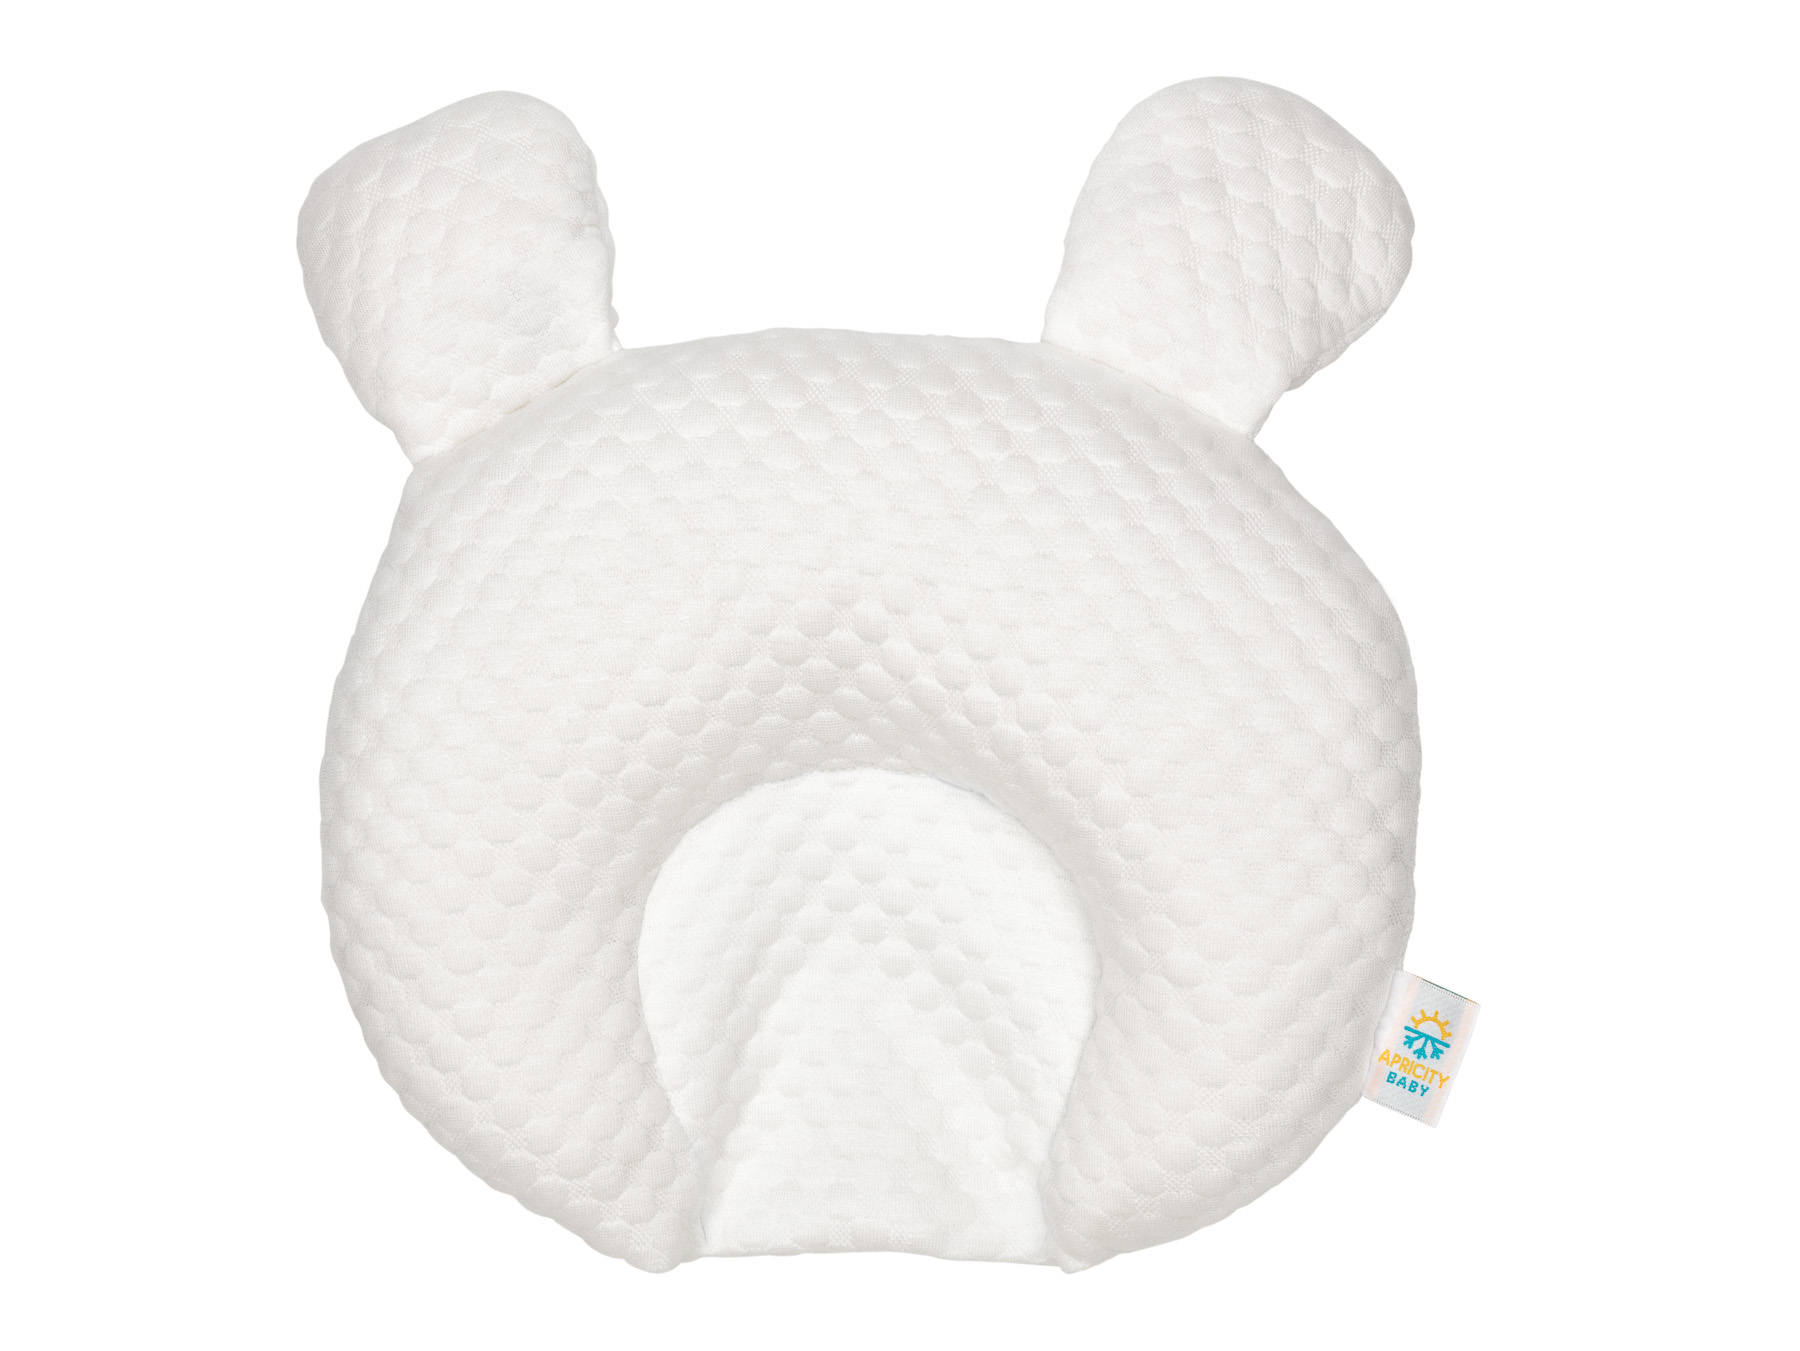 Baby Pillow lay flat front on without background_- Advertising product photography for Amazon